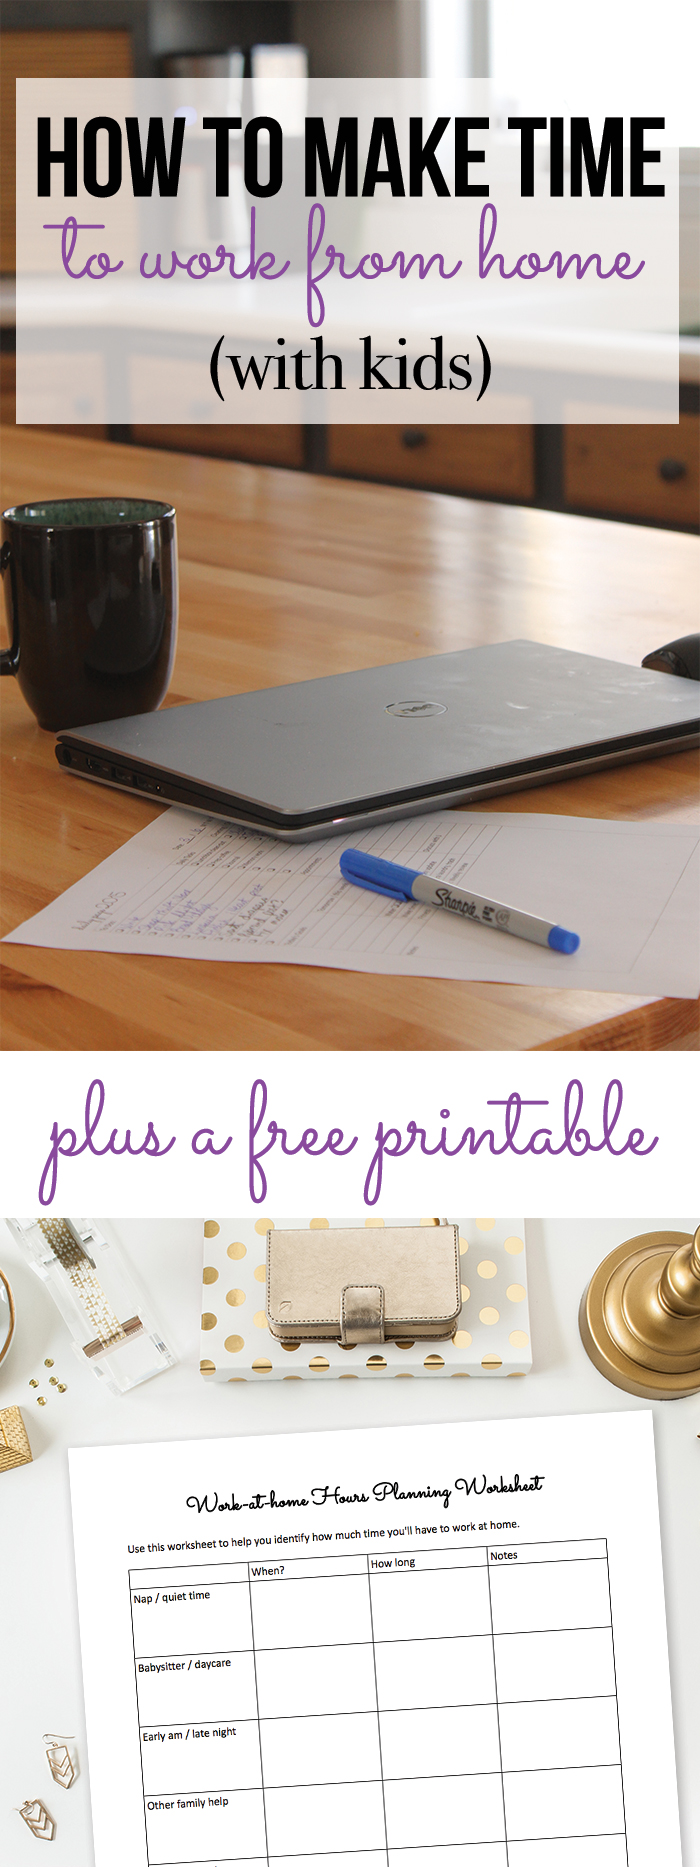 How to make time to work from one when you have kids. Also includes a free printable to help you plan your time and work.